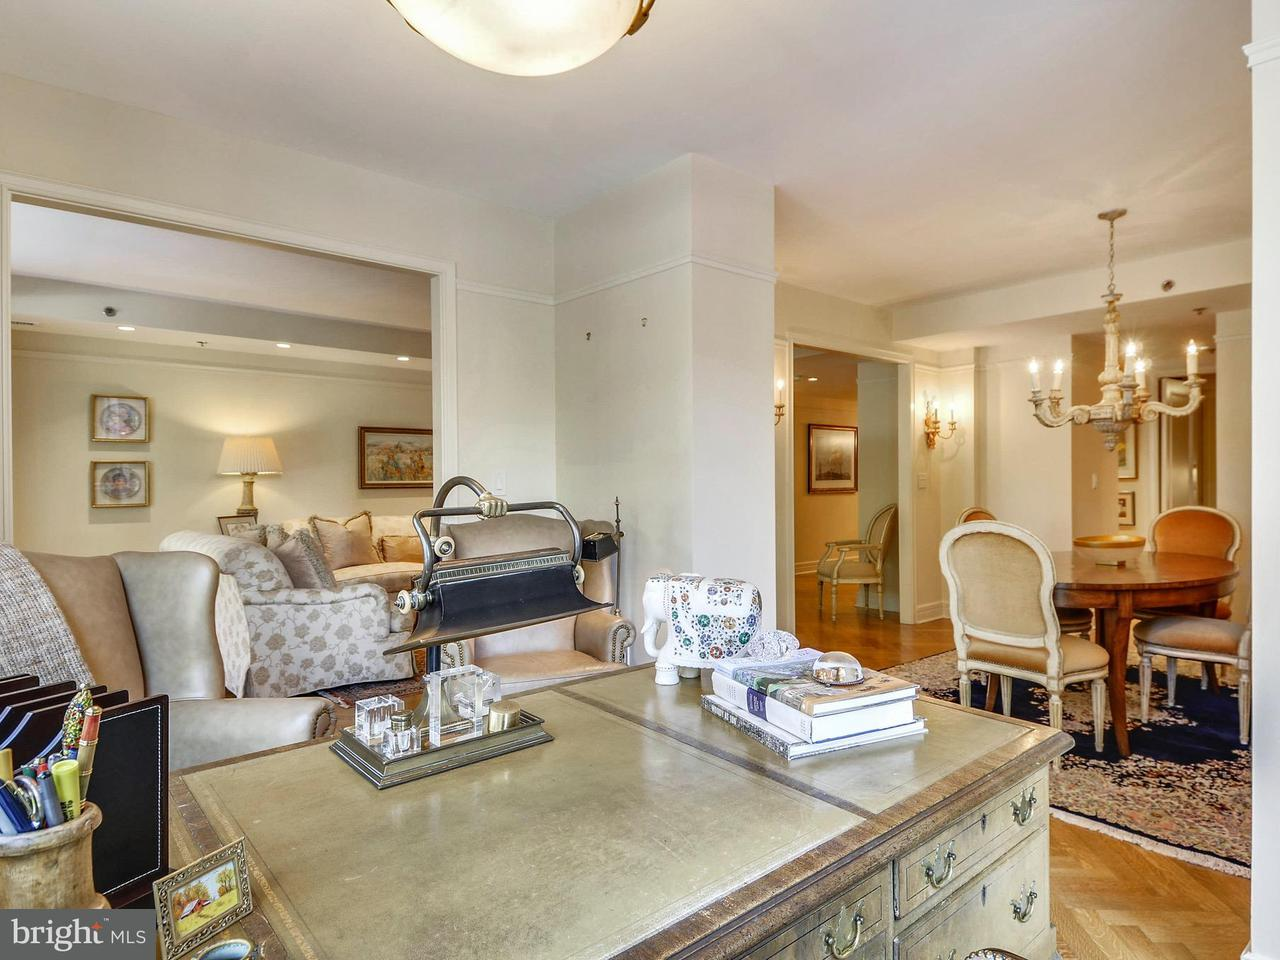 Additional photo for property listing at 1155 23rd St Nw #2e 1155 23rd St Nw #2e Washington, コロンビア特別区 20037 アメリカ合衆国